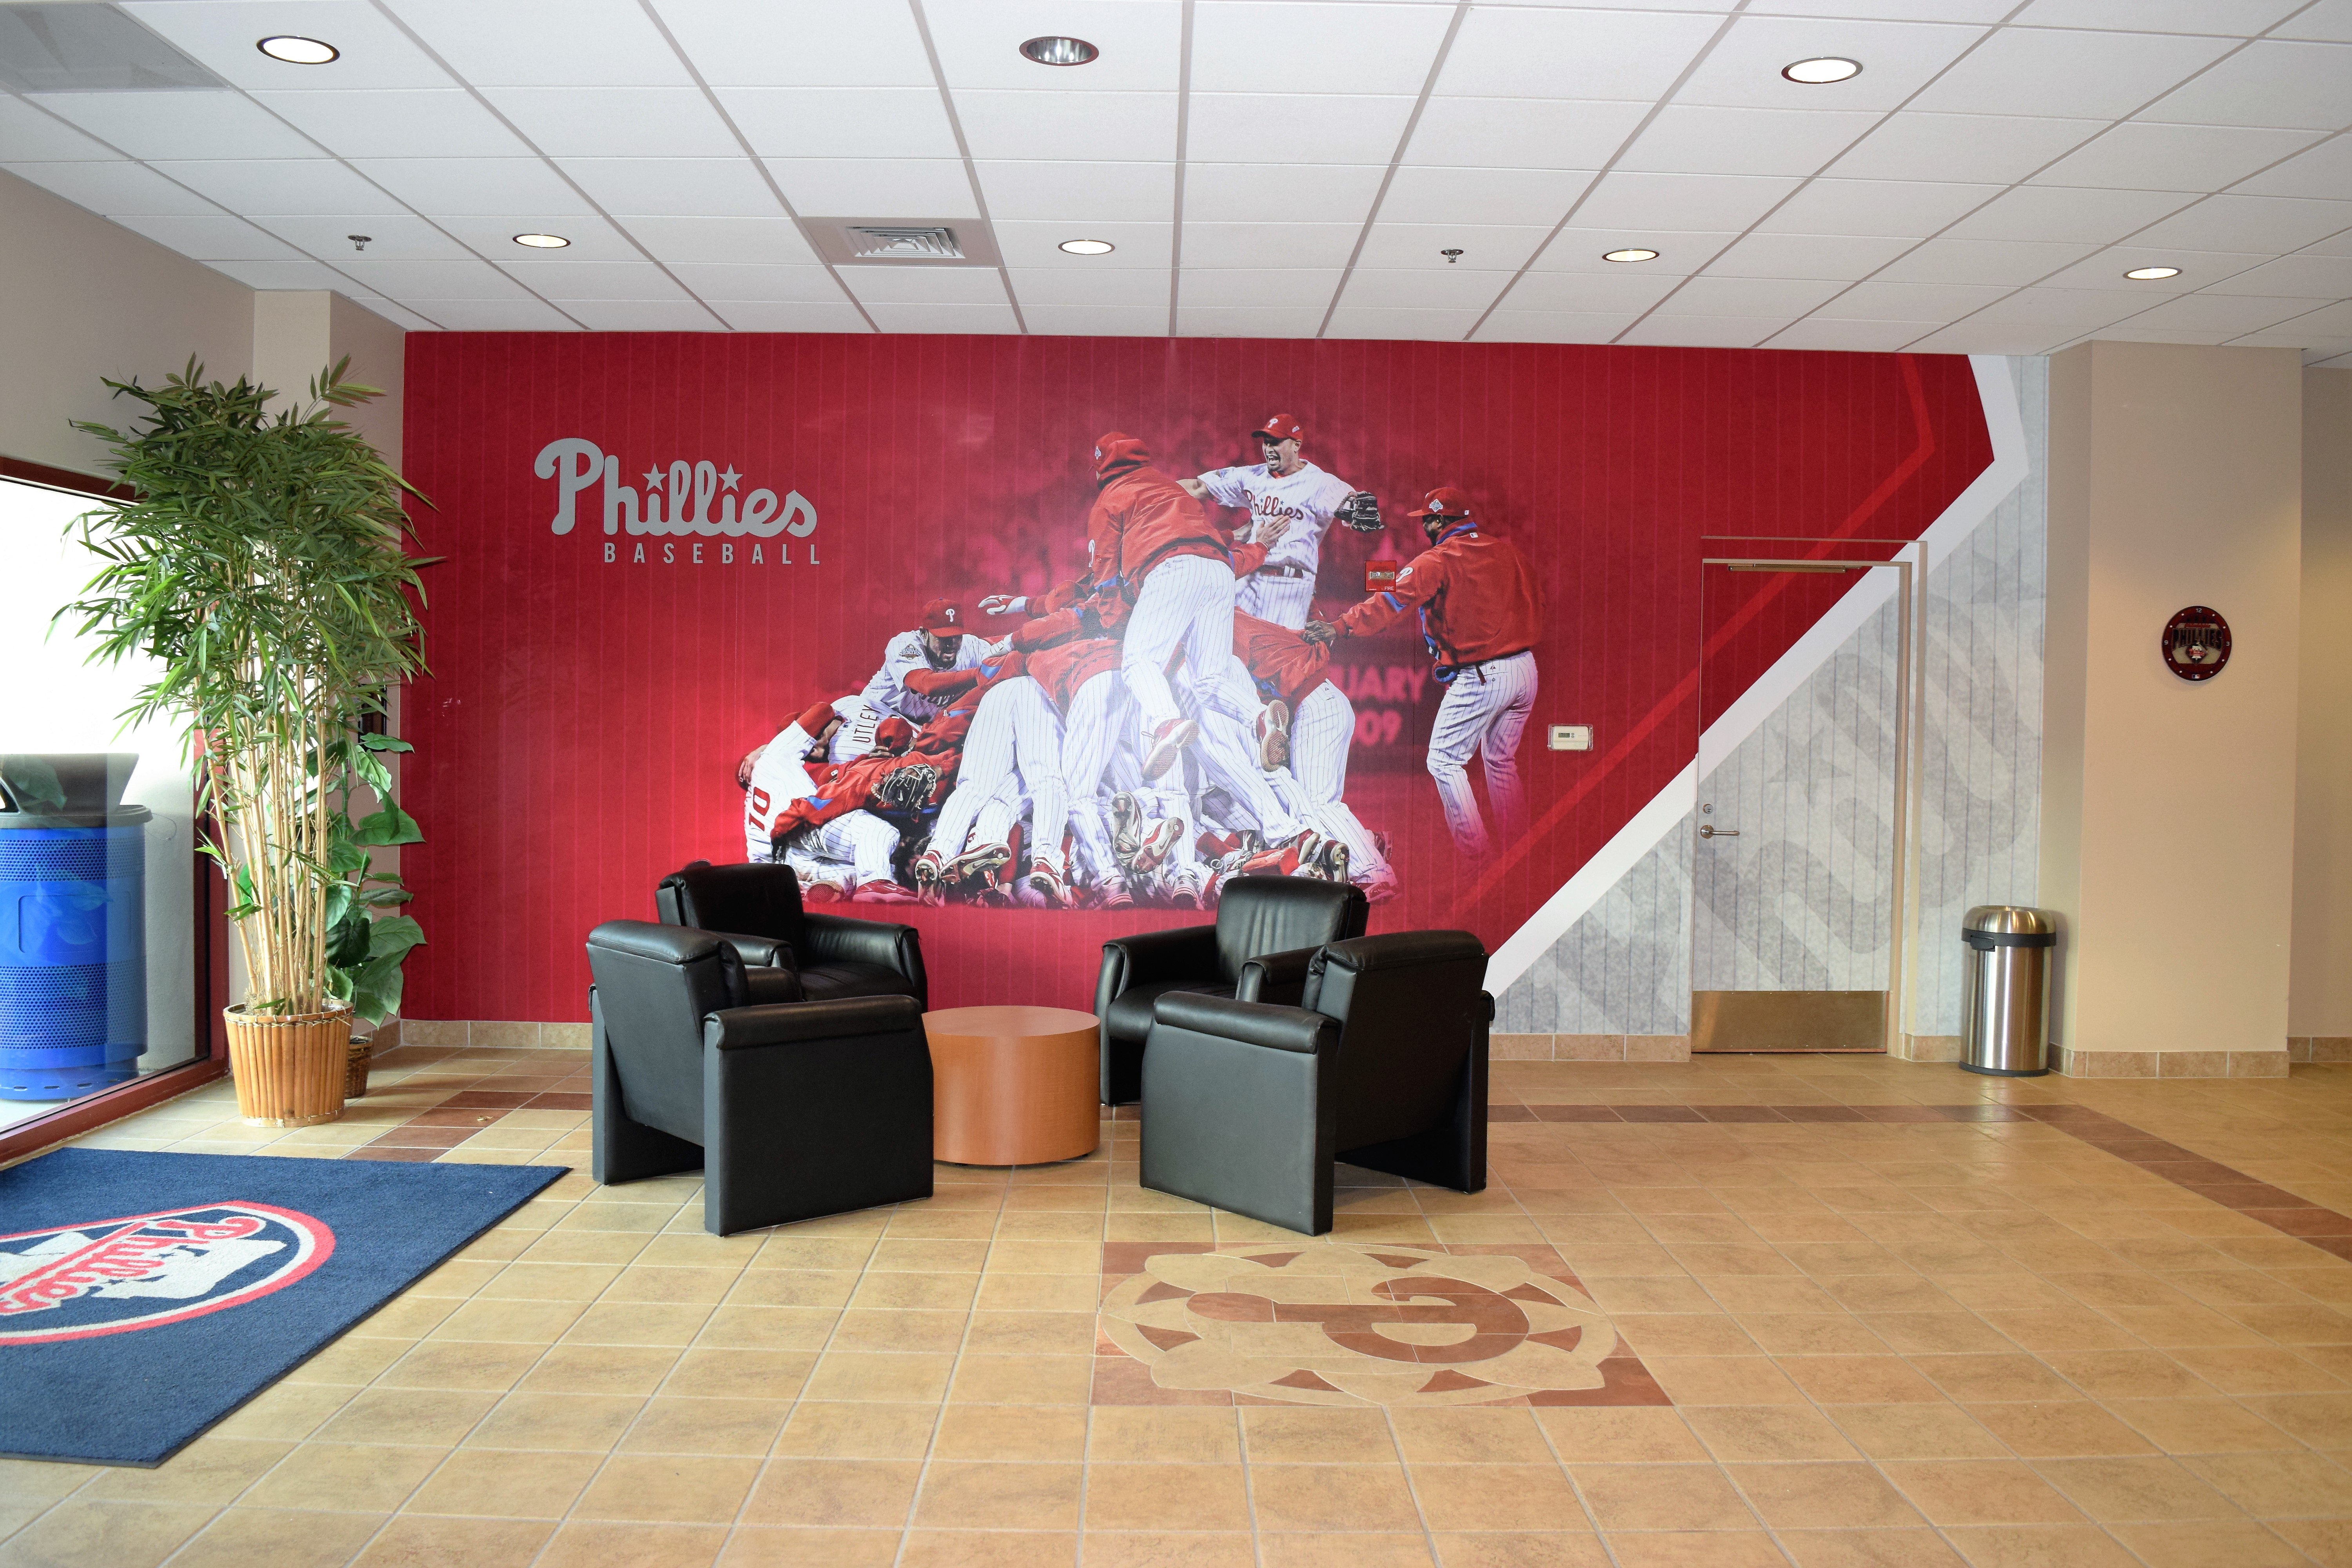 Sports facility wall mural designs by oai visual branding lobby with brushed aluminum display championship wall amipublicfo Choice Image